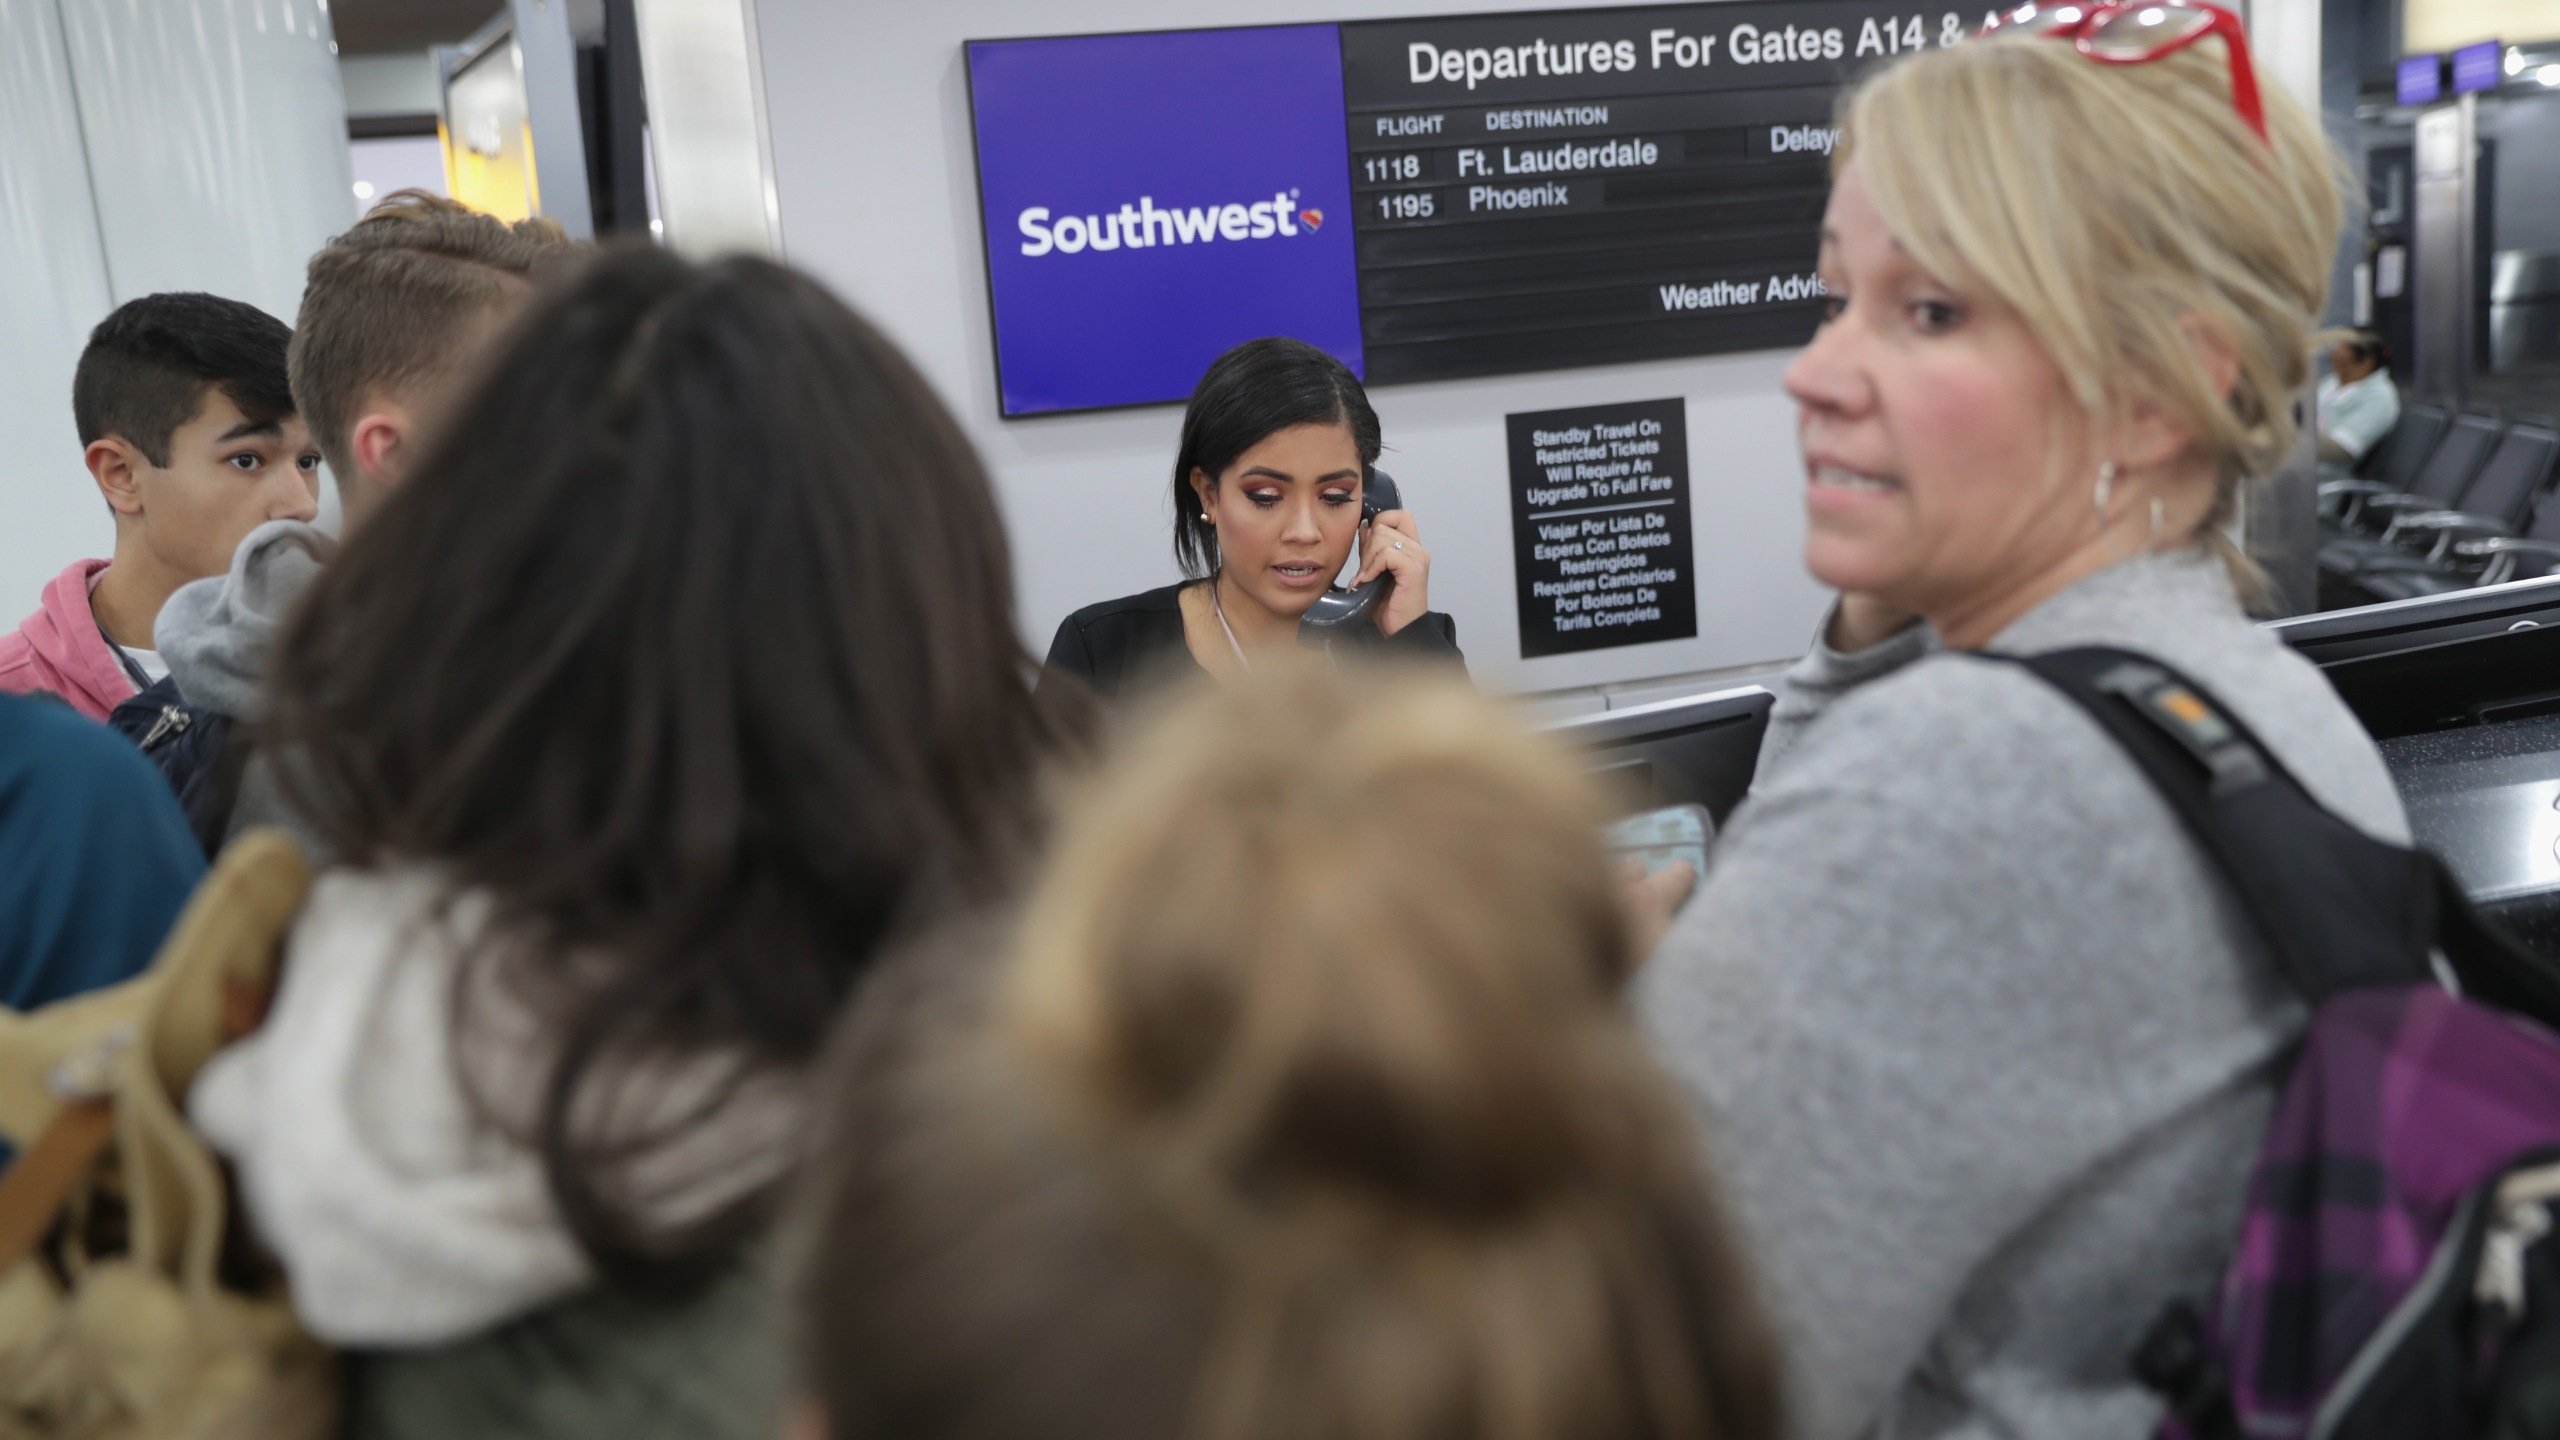 Passengers wait to rebook after their flights were cancelled due to a snow storm at the Newark Liberty International Airport on Nov. 15, 2018, in Newark, New Jersey. (Credit: John Moore/Getty Images)